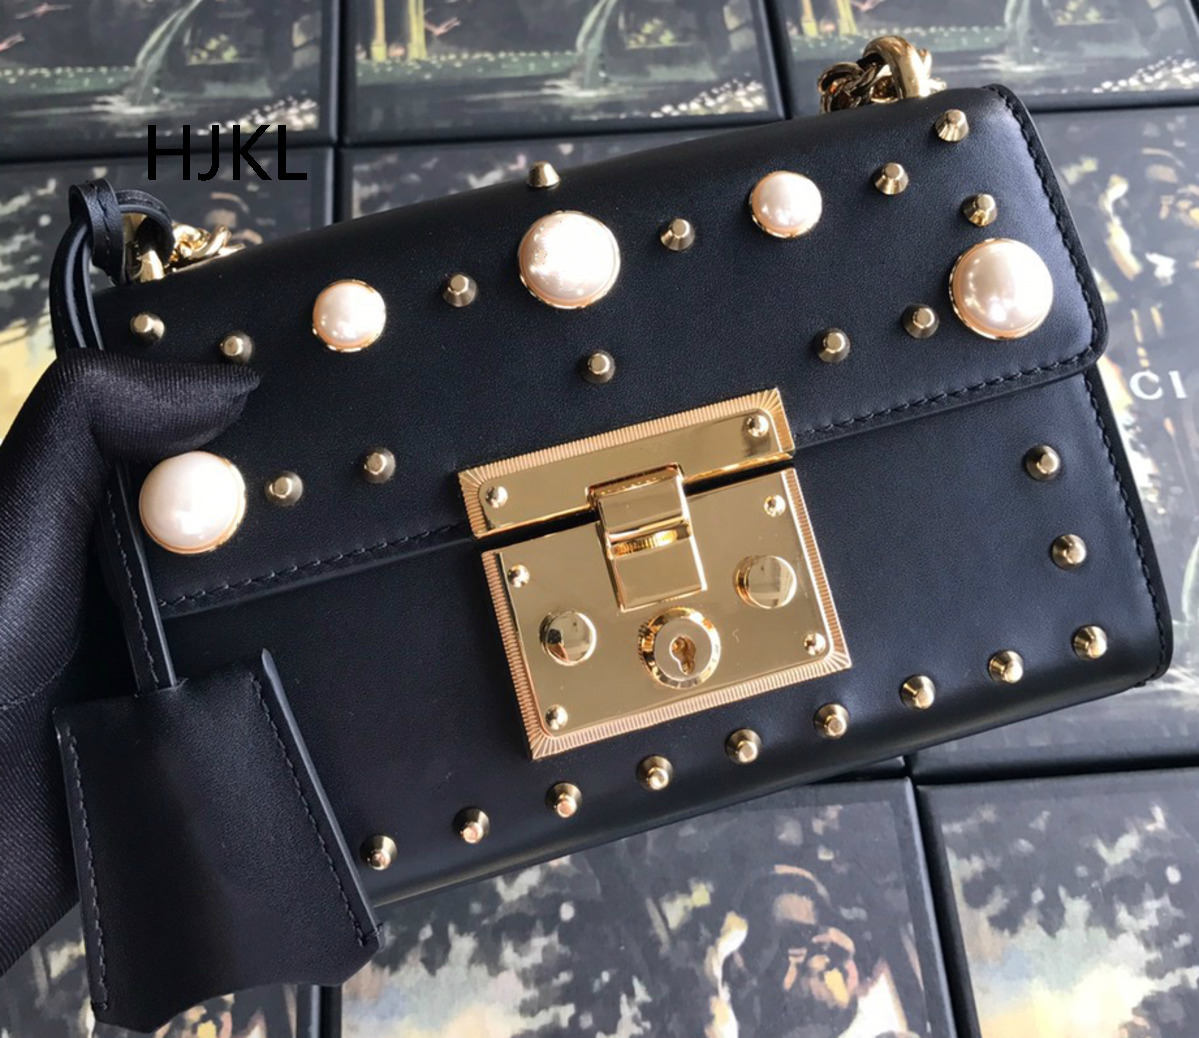 2019NEW Custom Clutch Luxury Handbags Women Bags Designer Real Leather Cowhide TOP Fashion Brand Small Purse